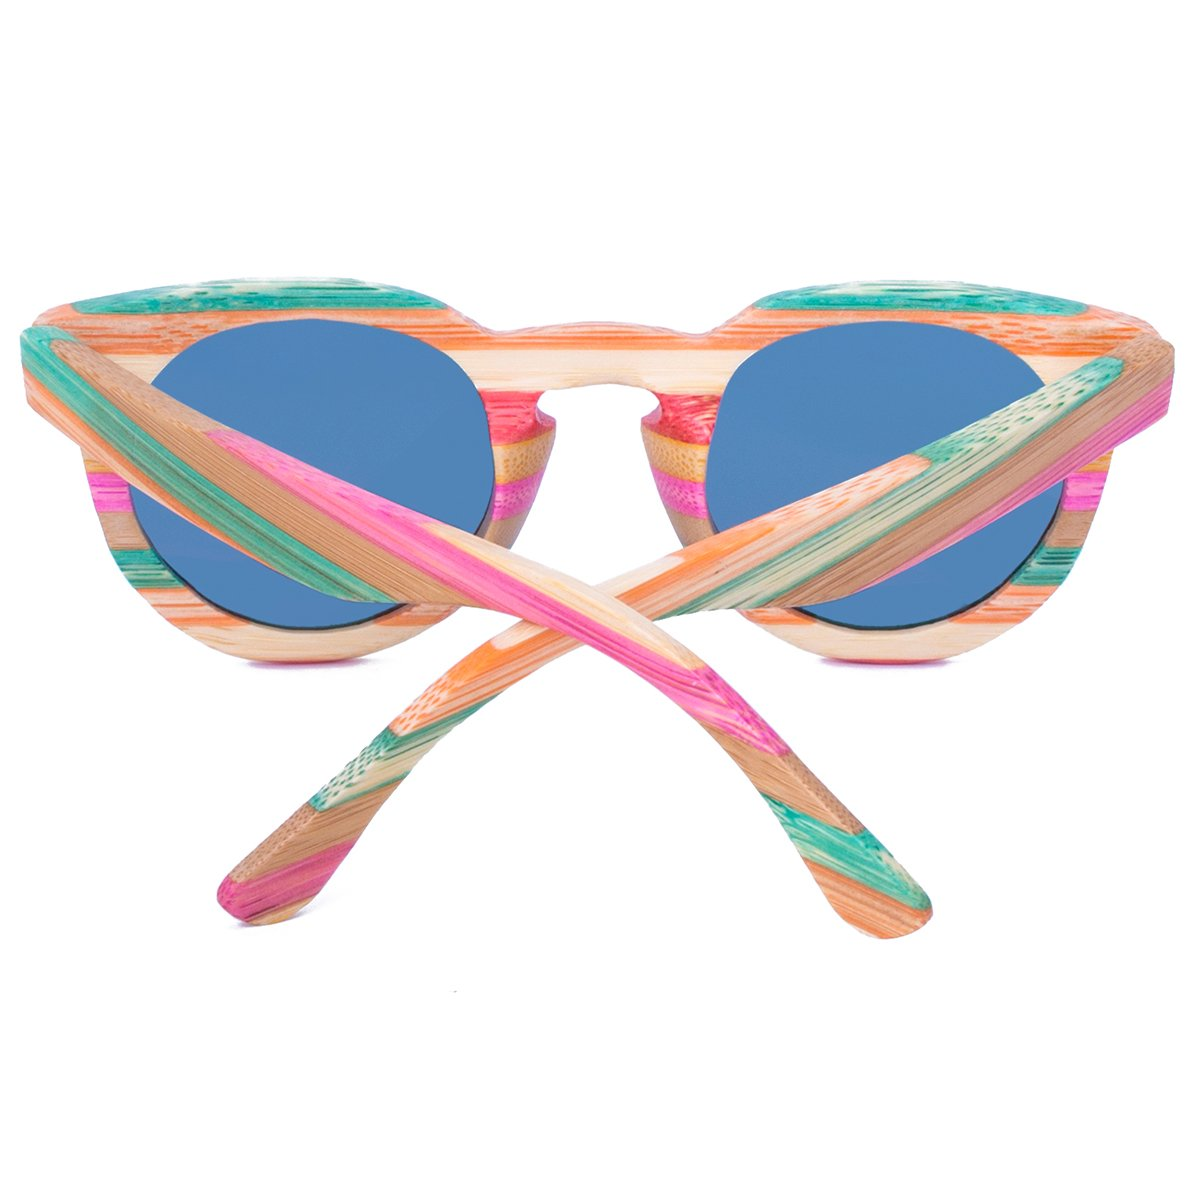 WISH CLUB Polarized Rainbow Wood Beach Round Sunglasses for Women mirrored Lenses Wooden Bamboo Sun Glasses for Girls Oval Colorful UV 400 Retro Lightweight Eyewear